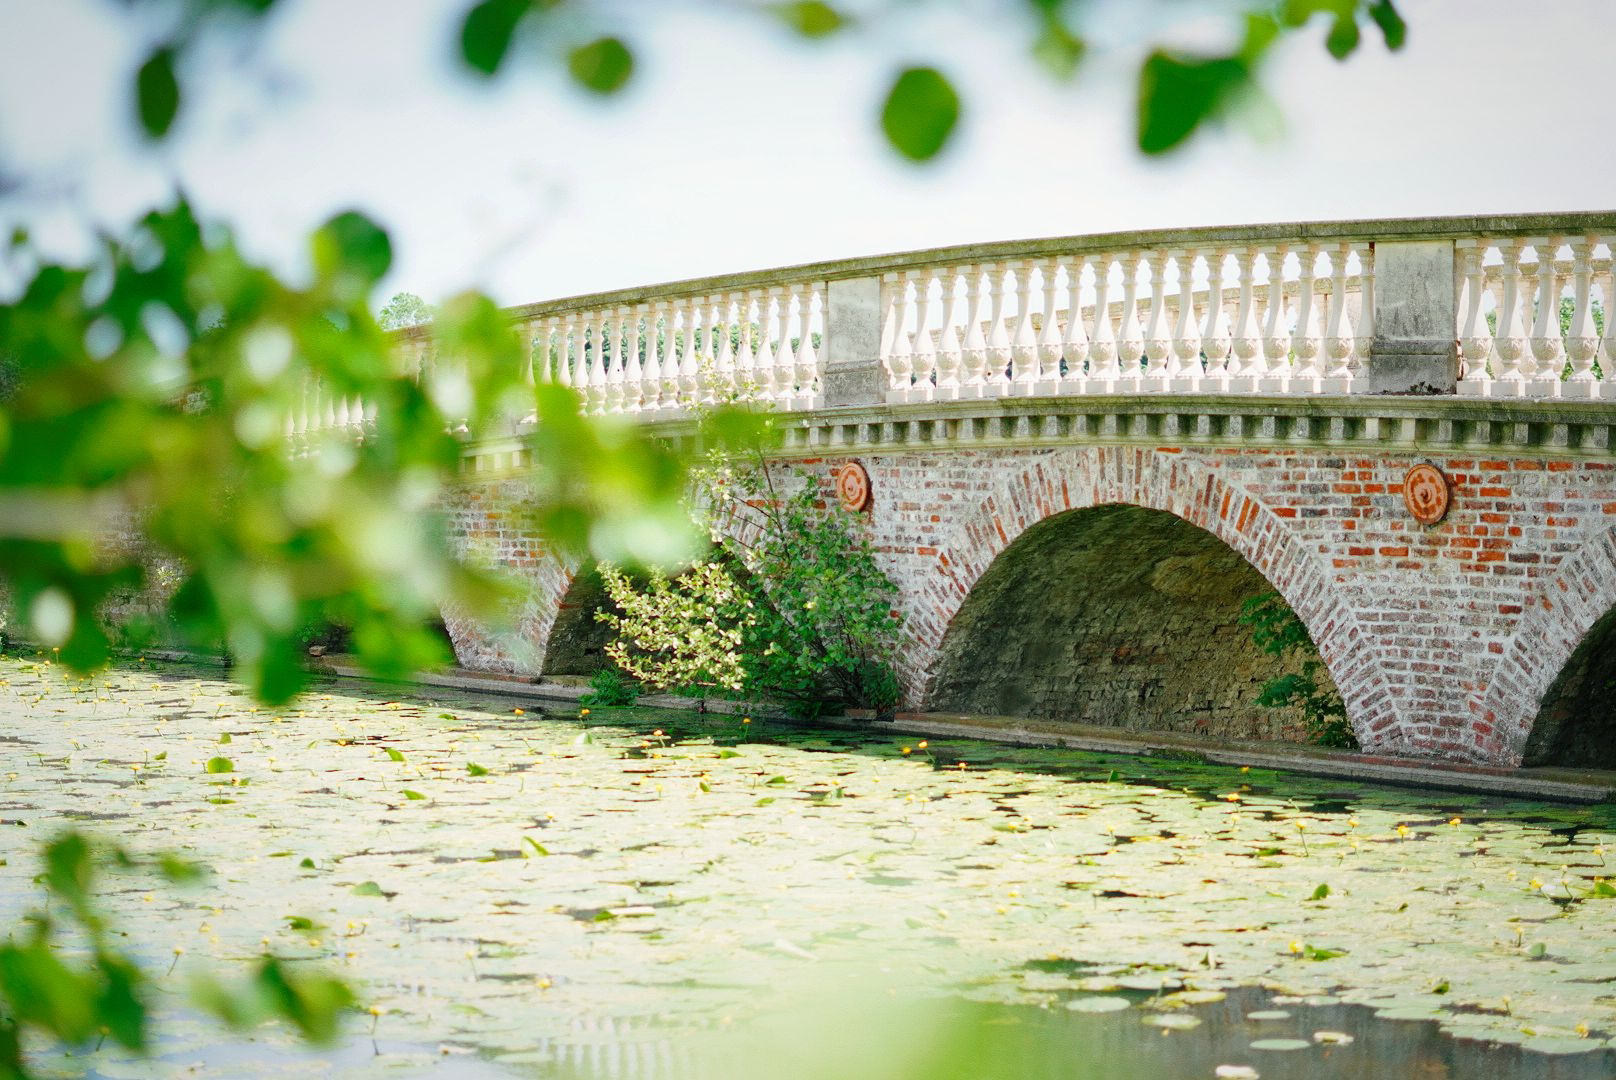 Green leaves blurred out in the foreground, framing a stately looking brick bridge over a lake.